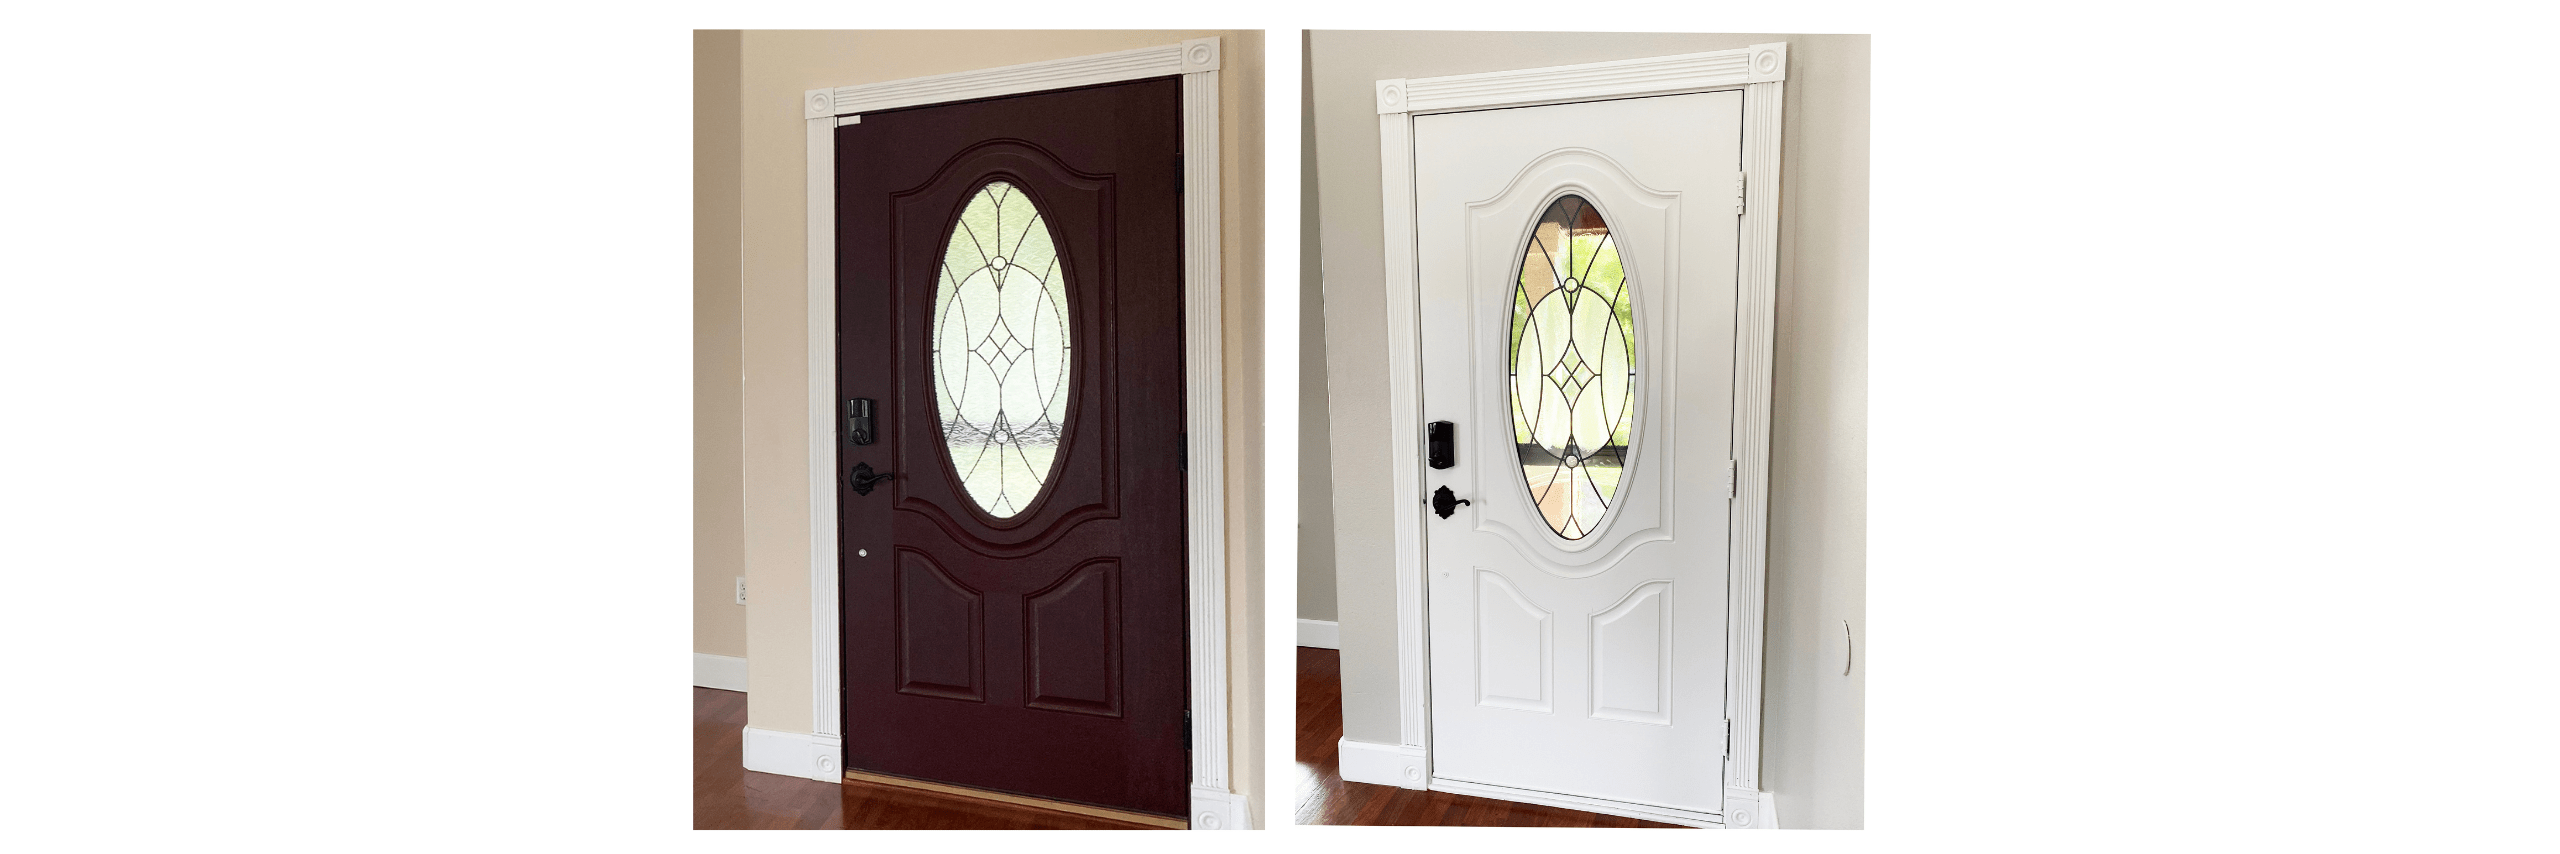 Front Door Interior Before and After Home Staging Consultation